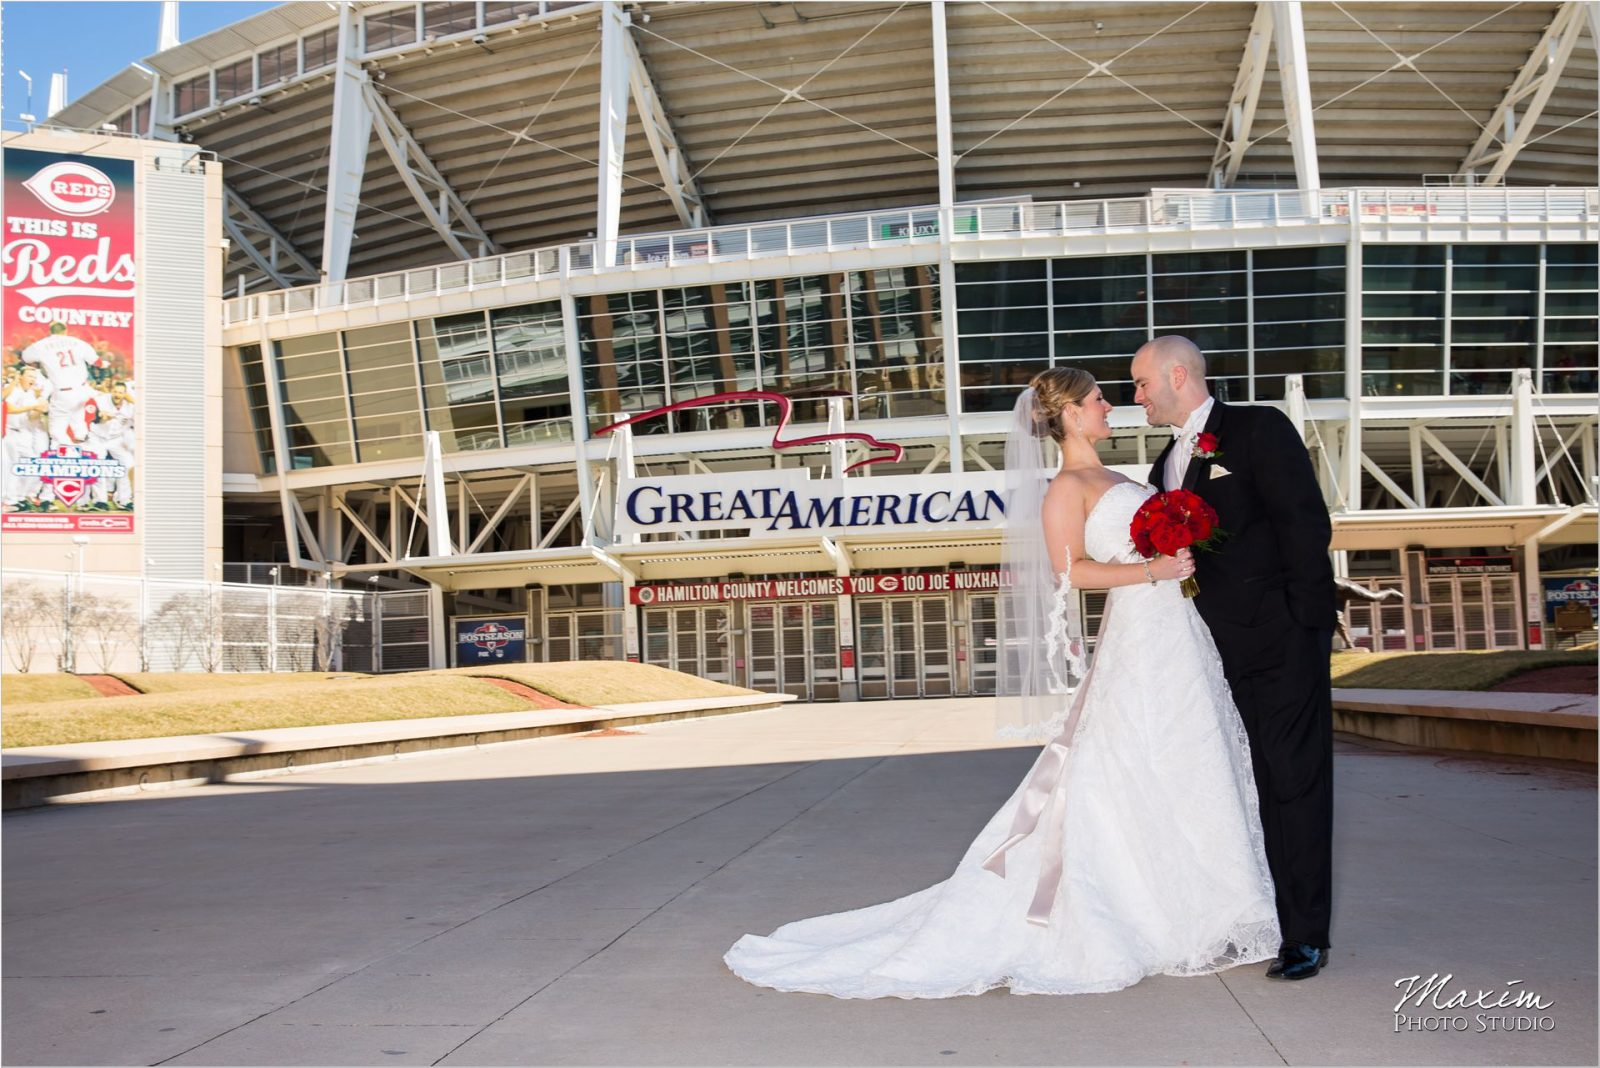 Bride Groom Great American Ballpark wedding